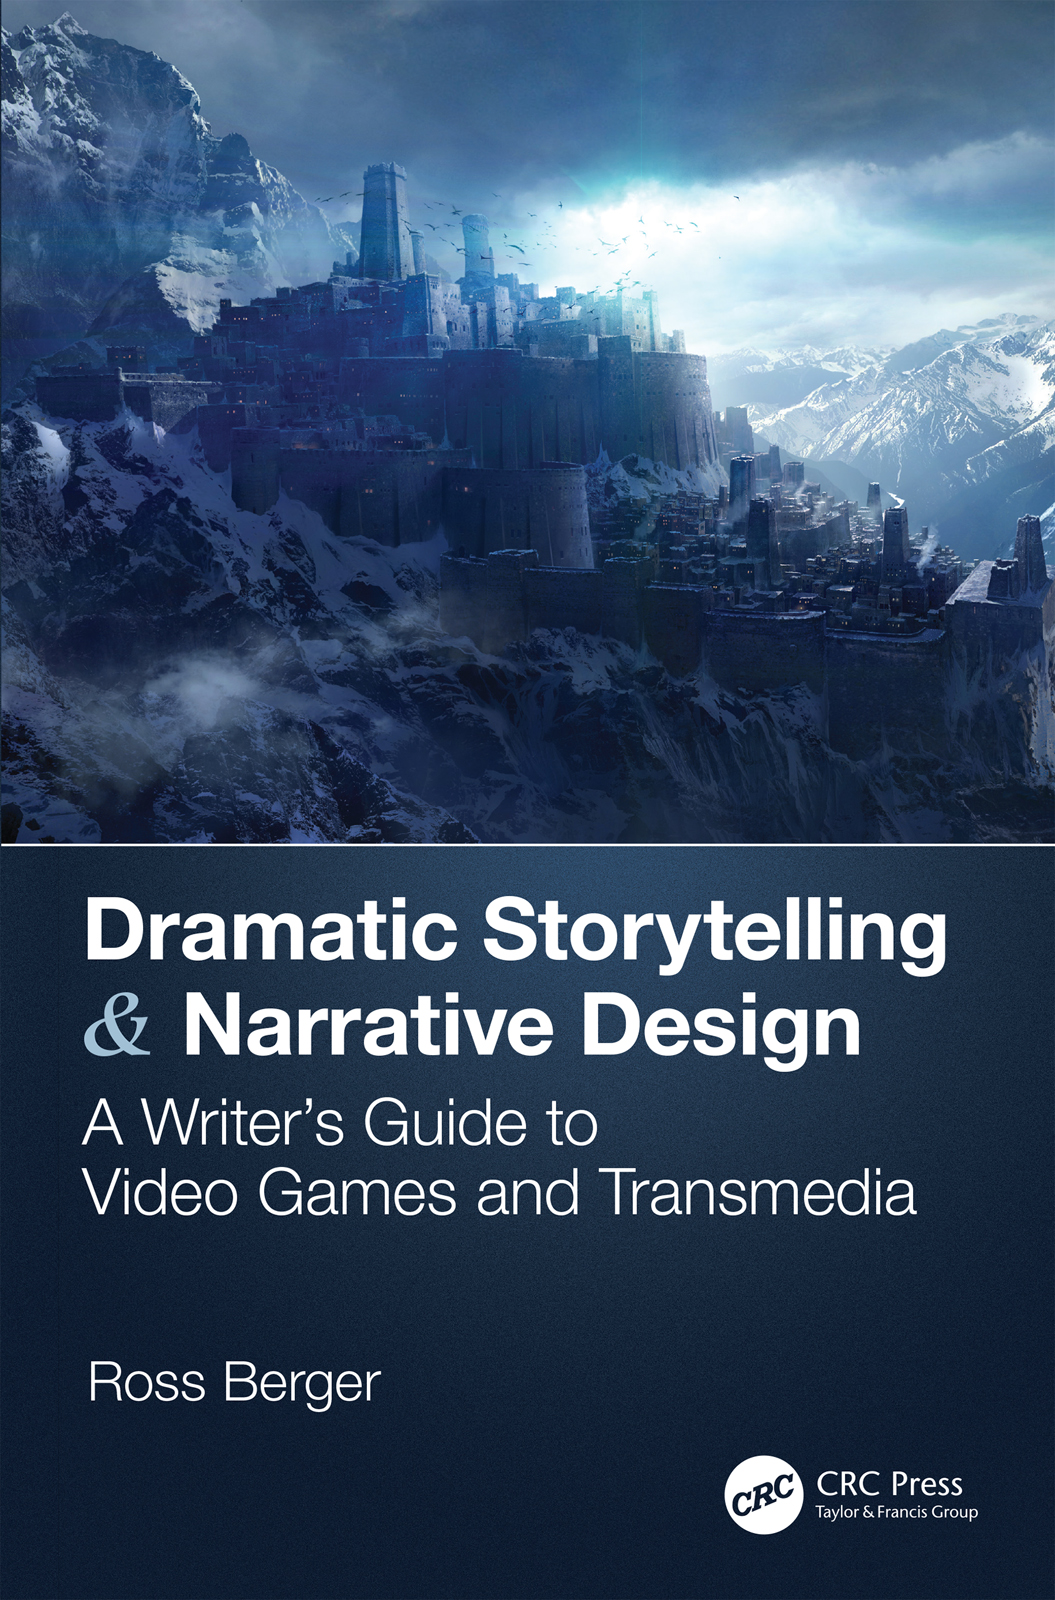 Dramatic Storytelling & Narrative Design: A Writer's Guide to Video Games and Transmedia book cover